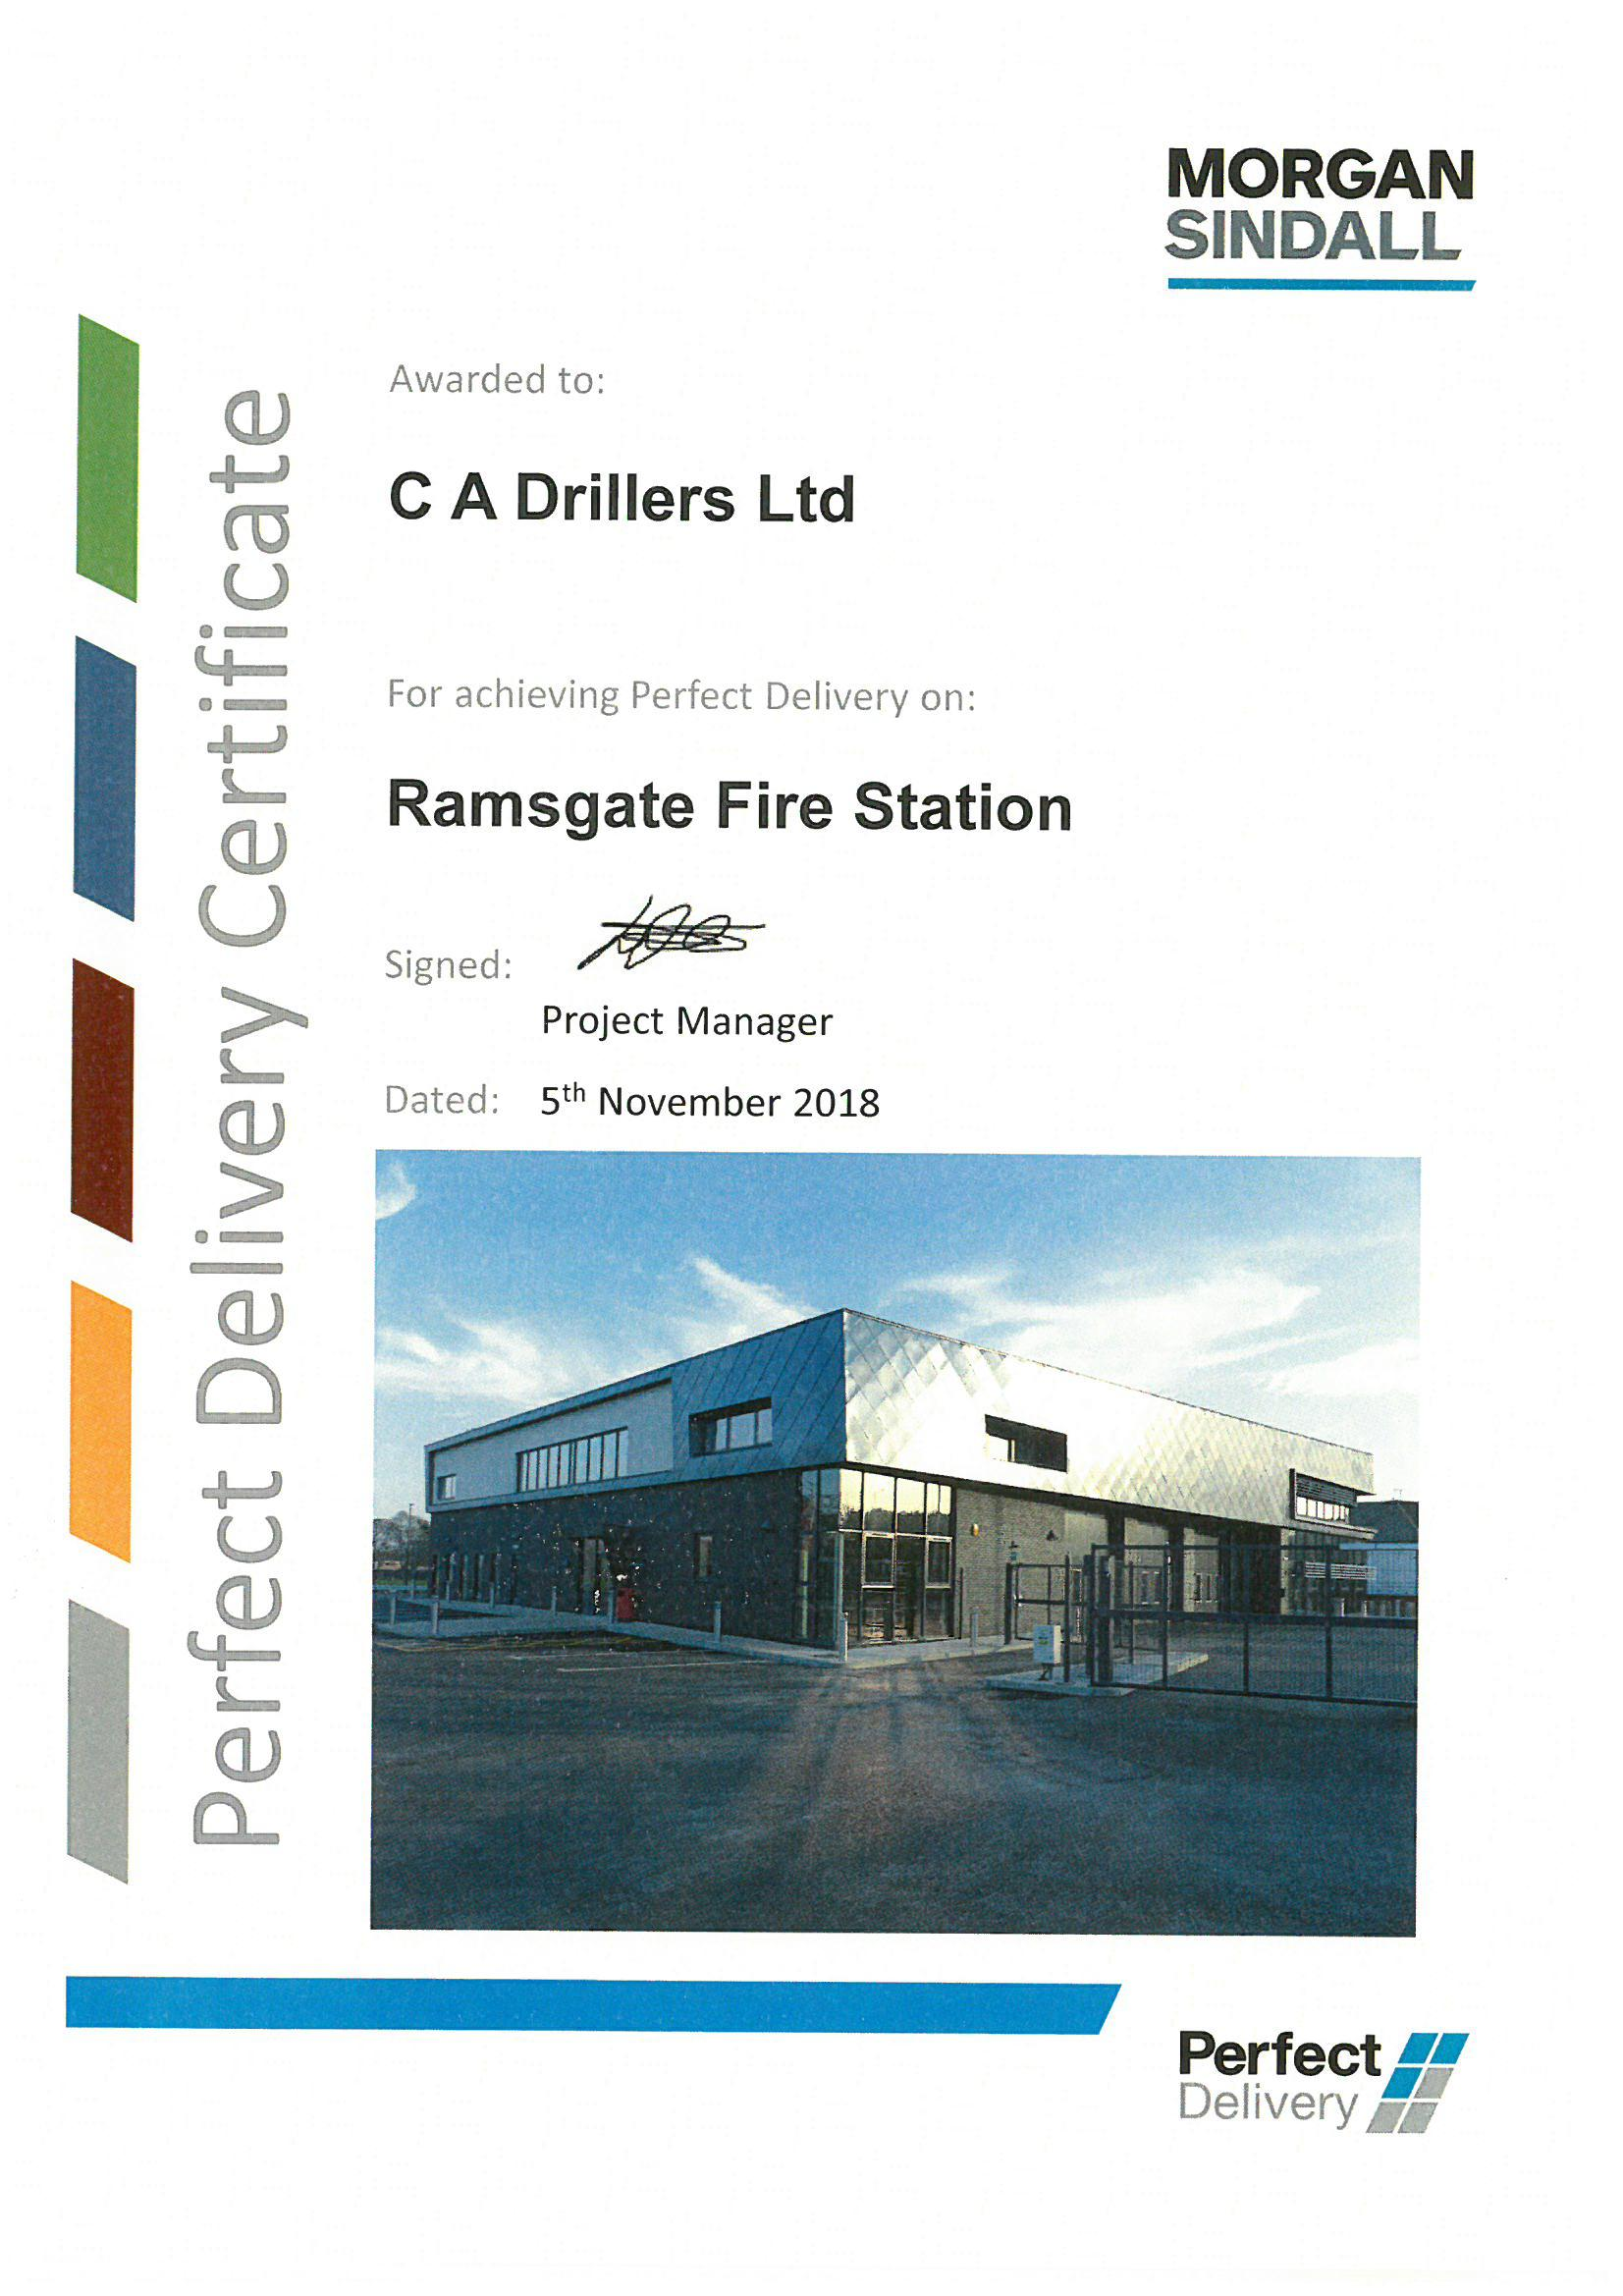 Certificate From Ramsgate Fire Station